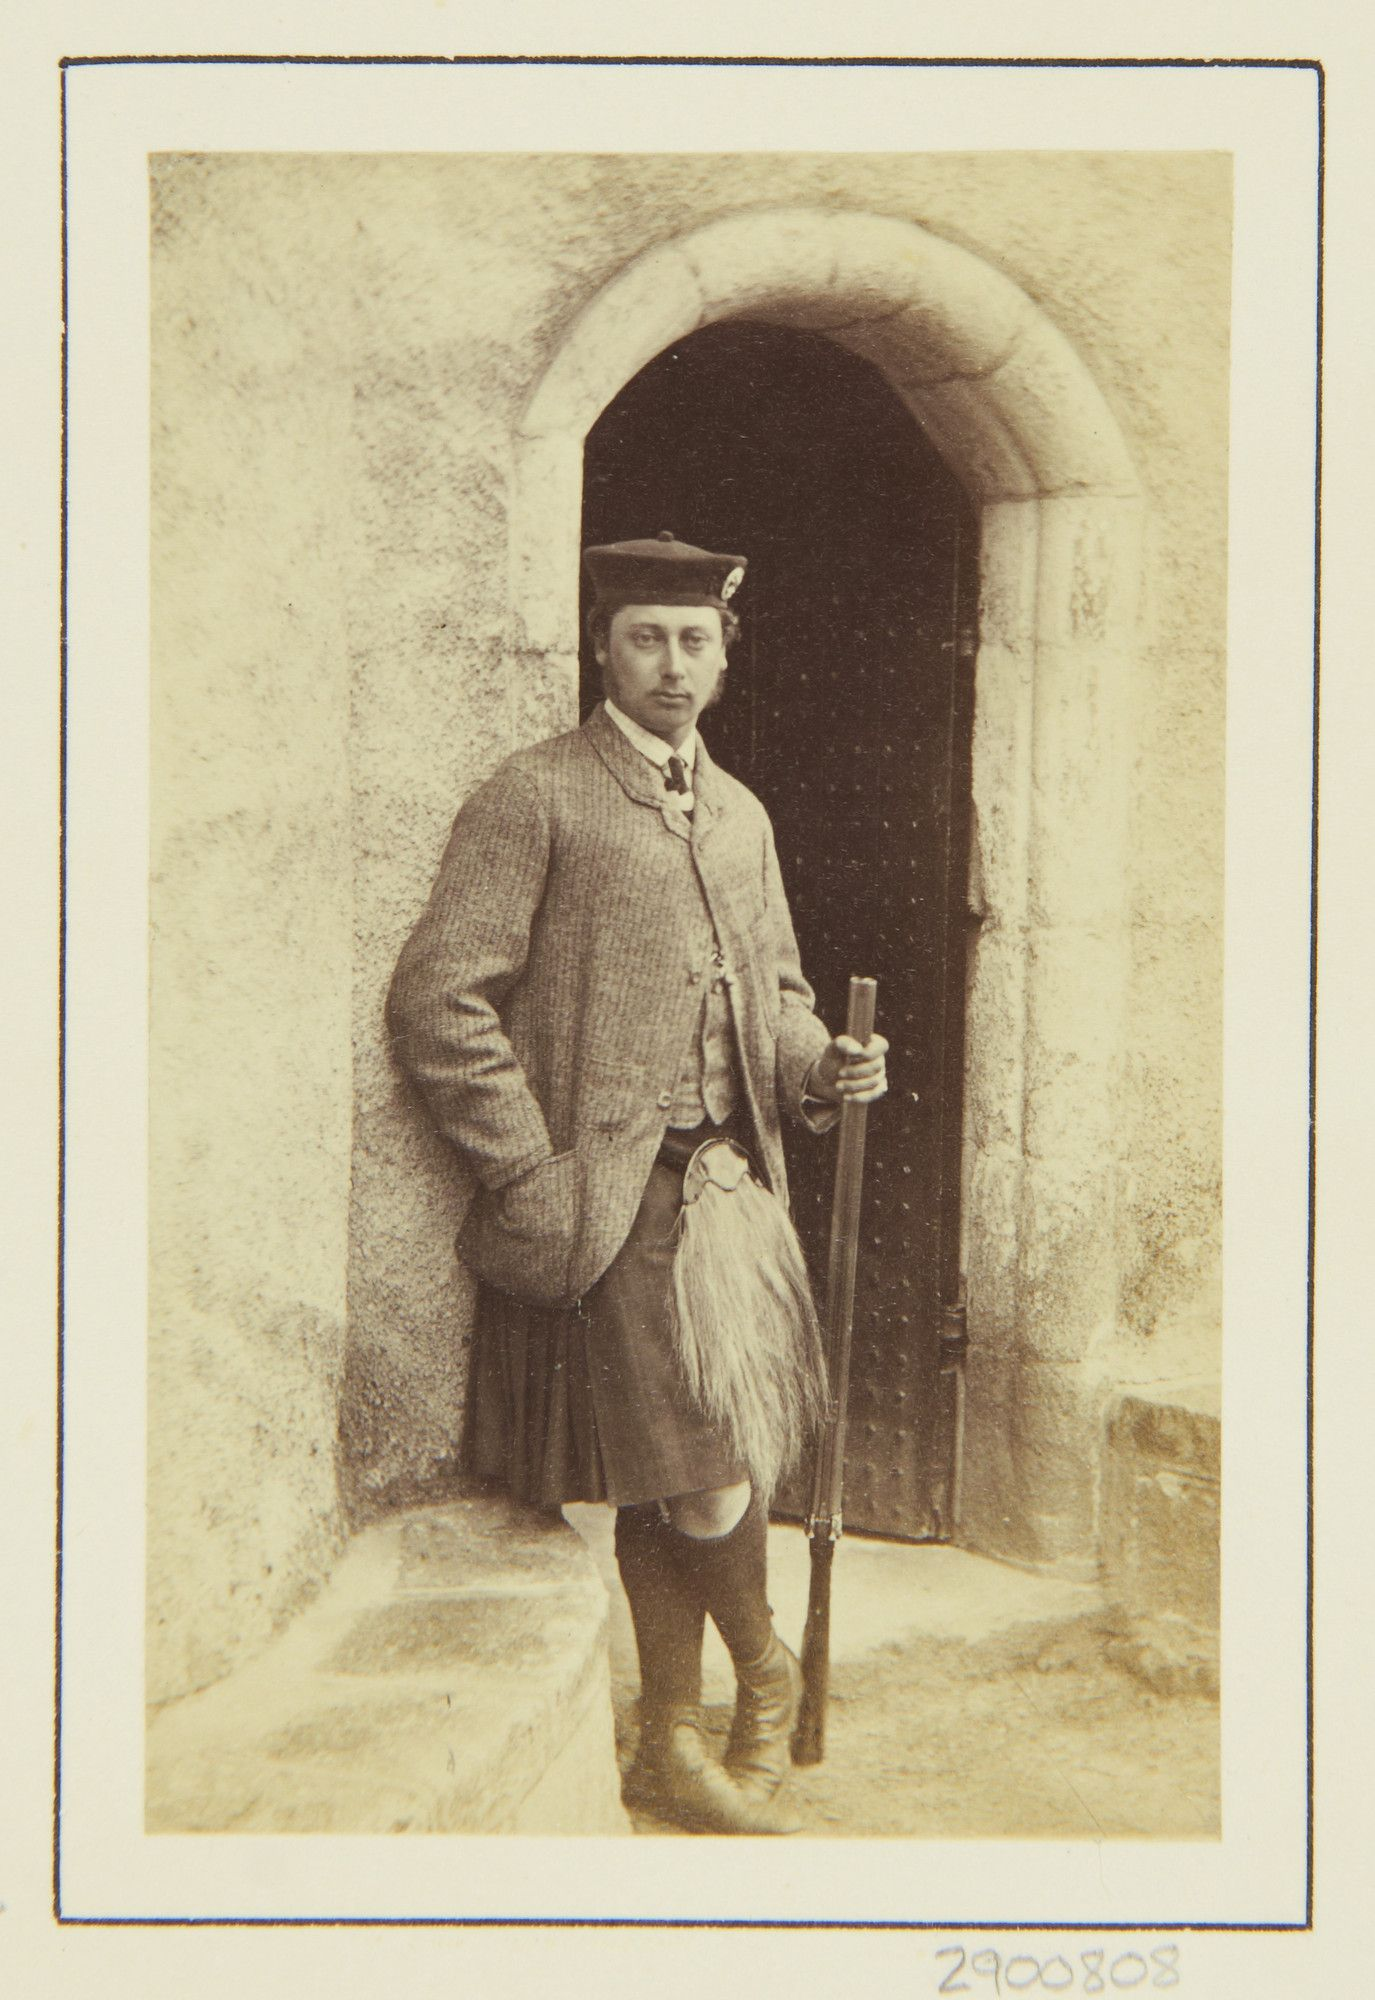 The Prince of Wales, Abergeldie 1863 [in Portraits of Royal Children Vol.7 1863-1864] | Royal Collection Trust